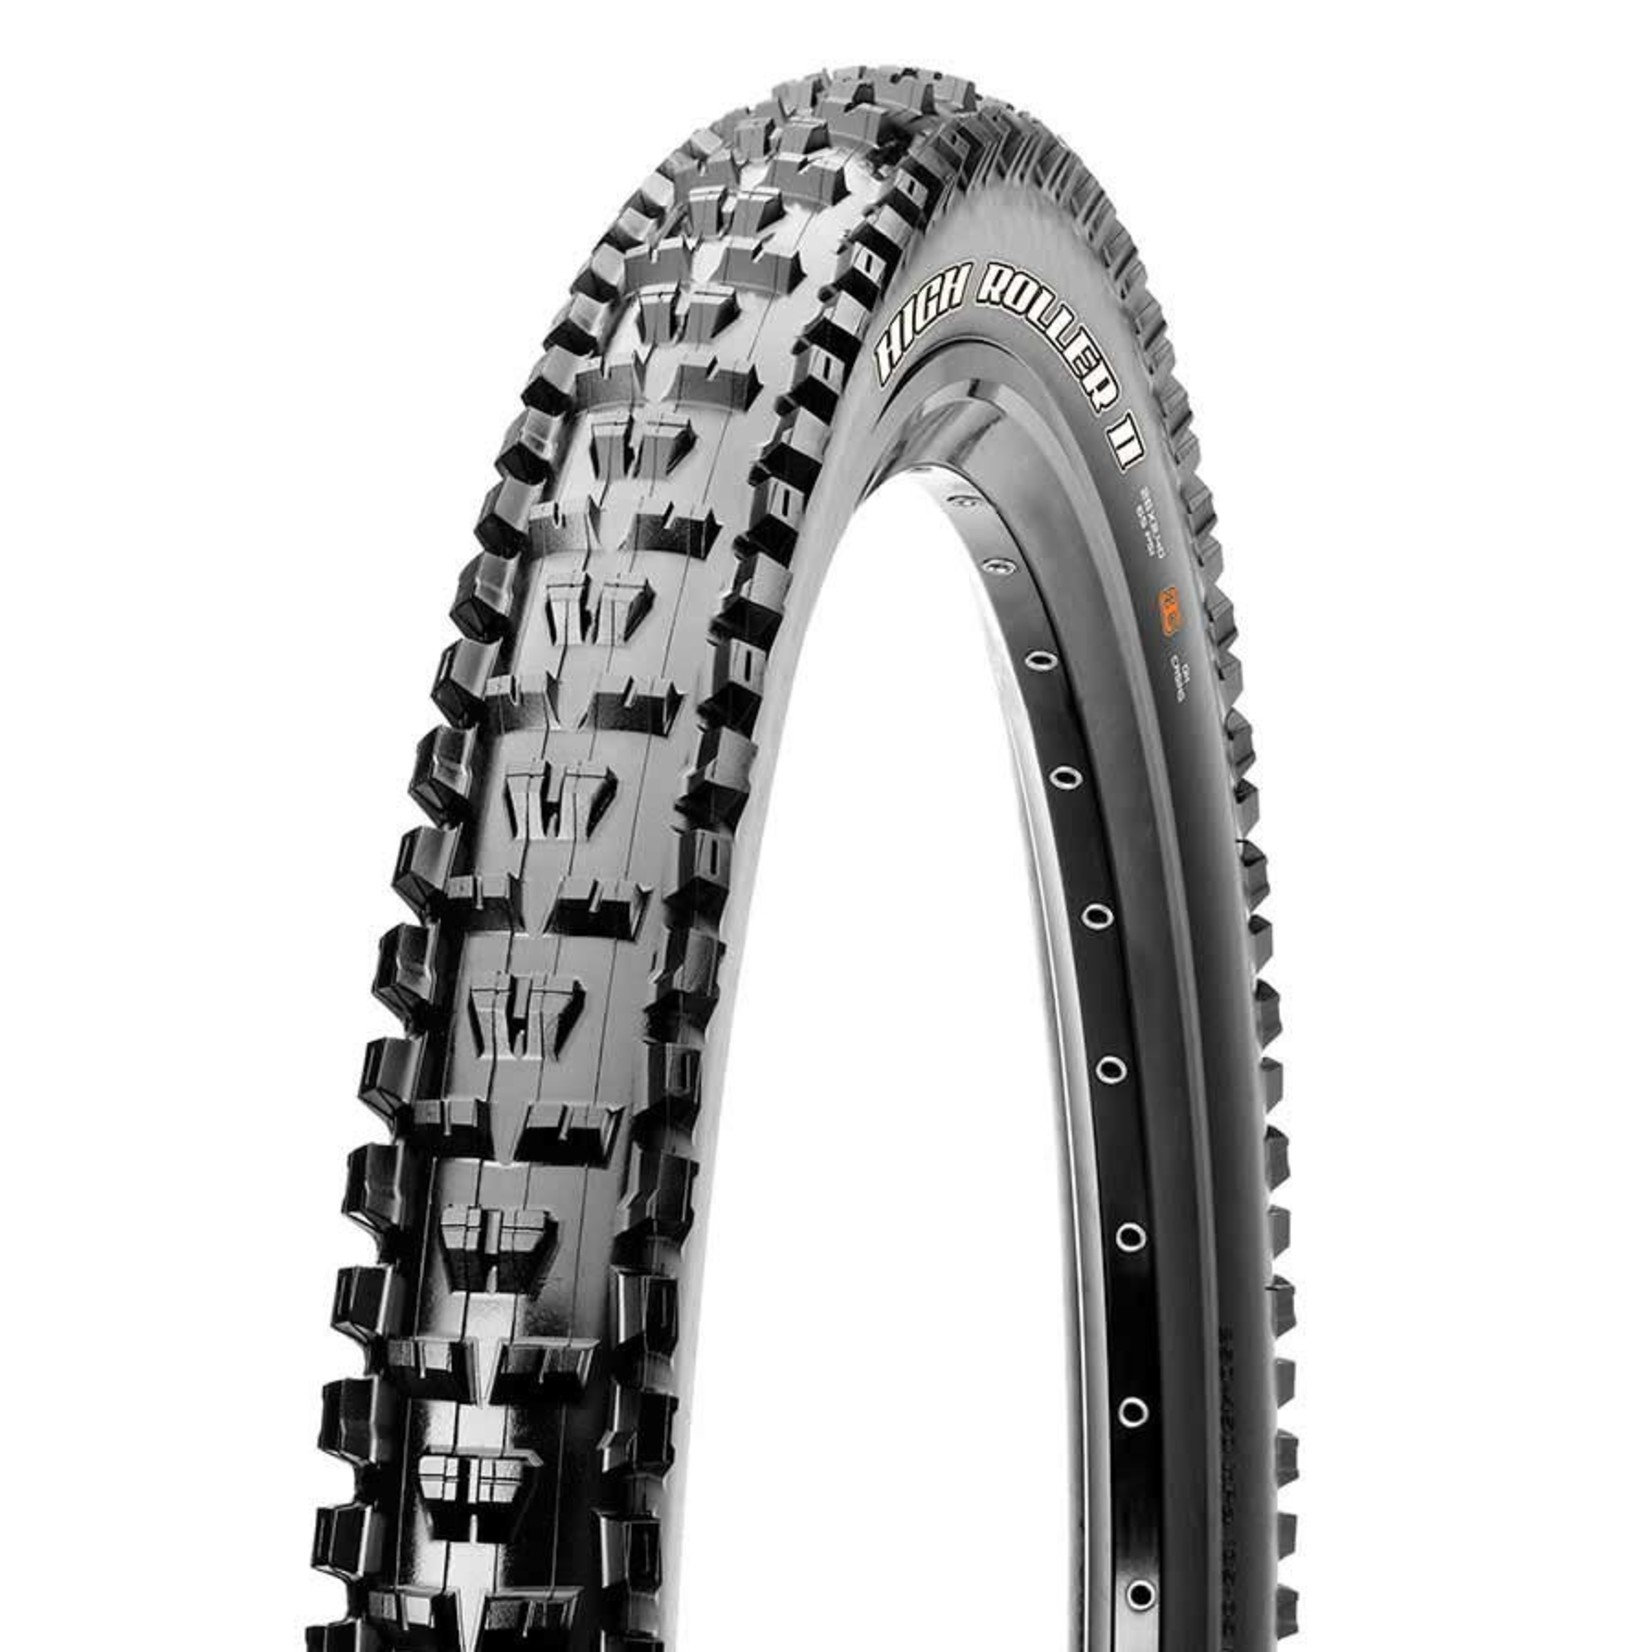 Maxxis Maxxis Tire High Roller 27.5x2.4